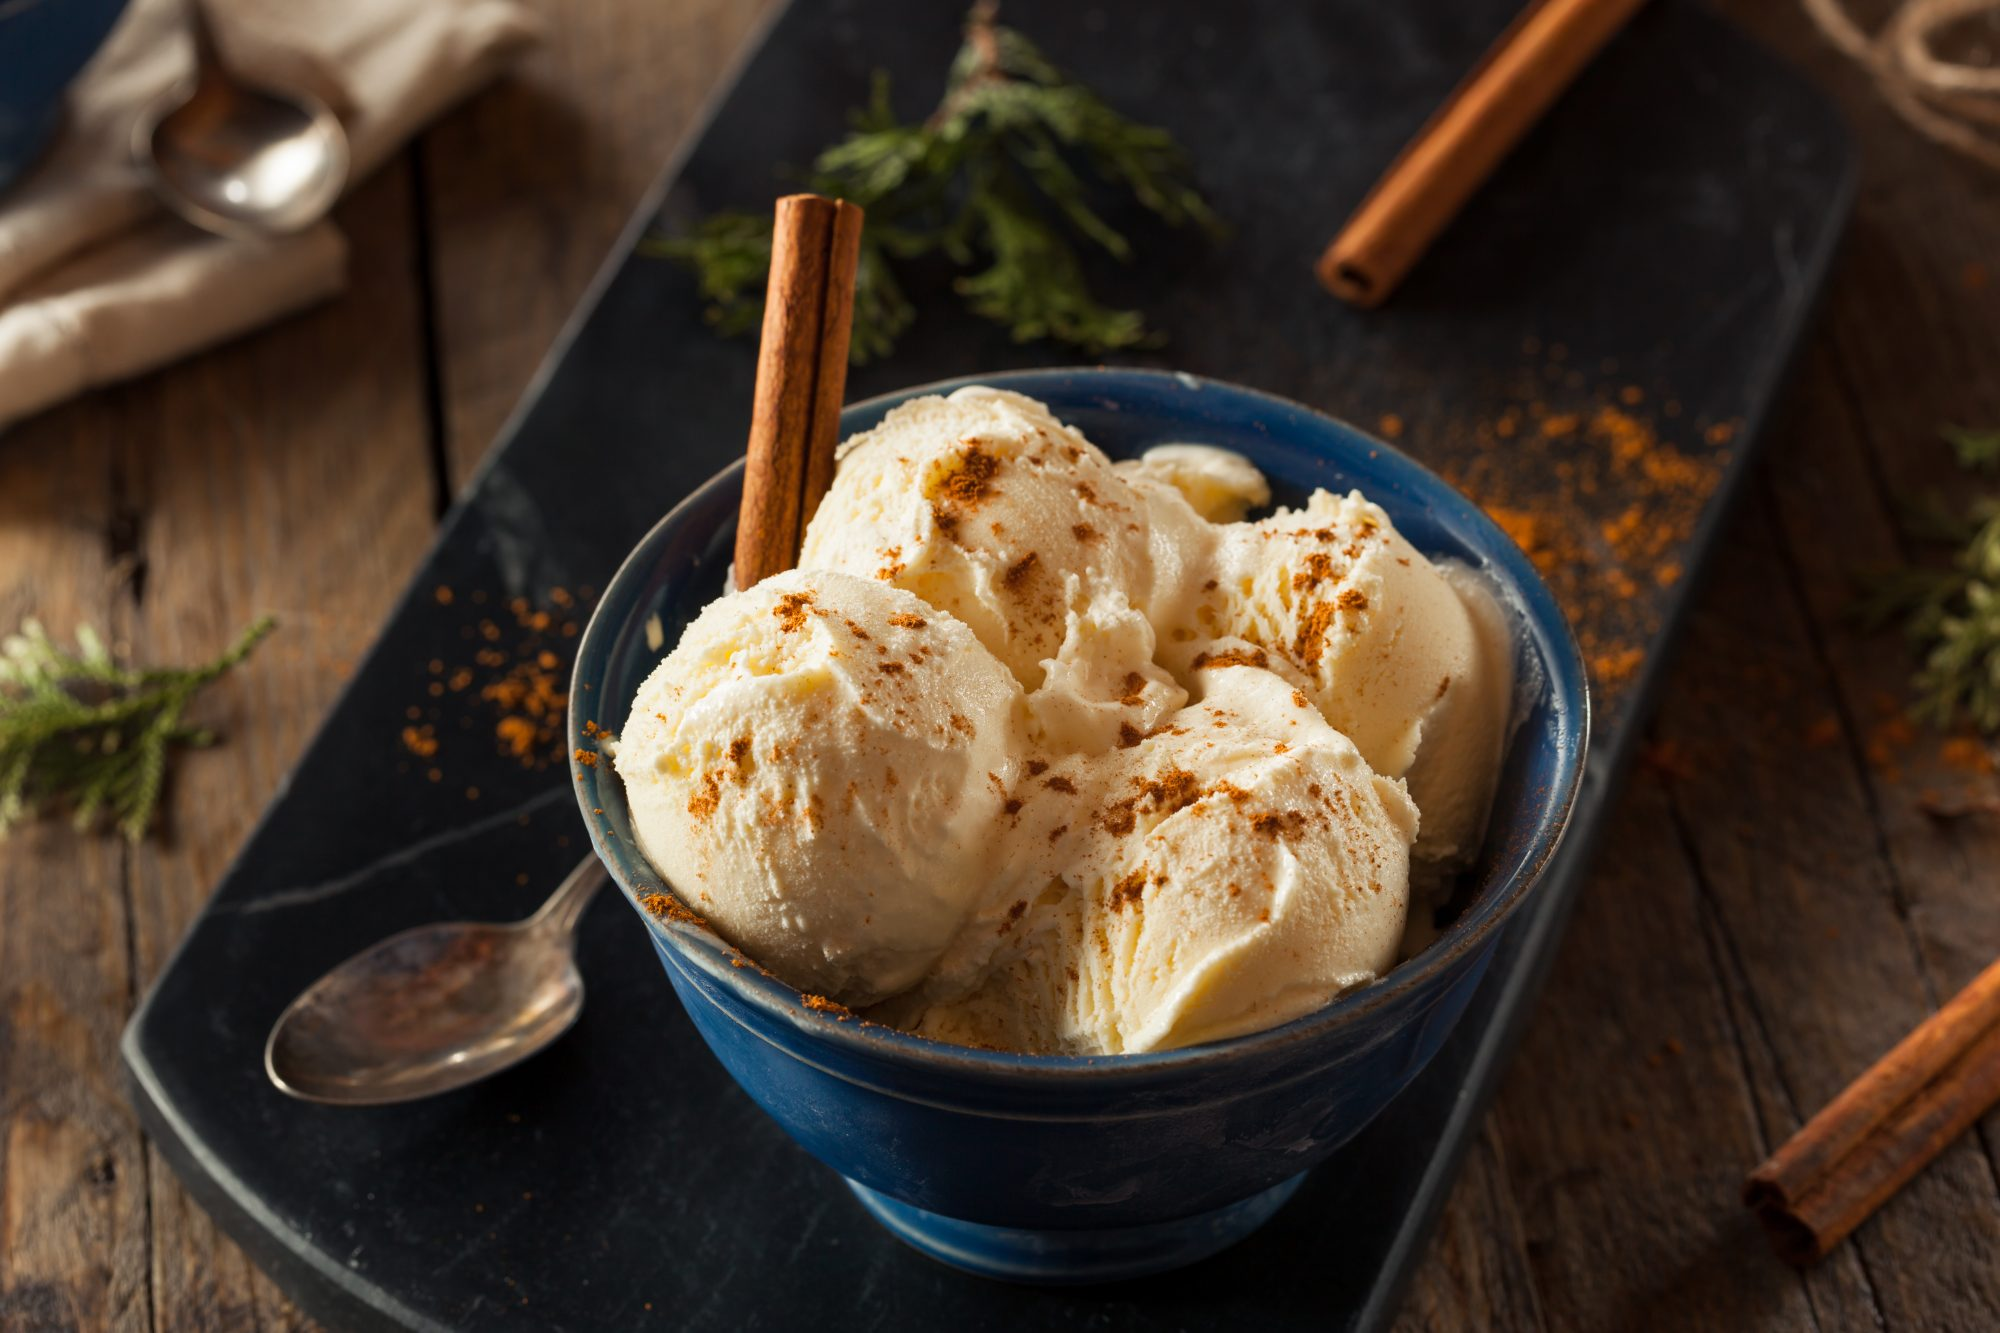 This Eggnog Ice Cream is the Easiest Holiday Dessert Ever